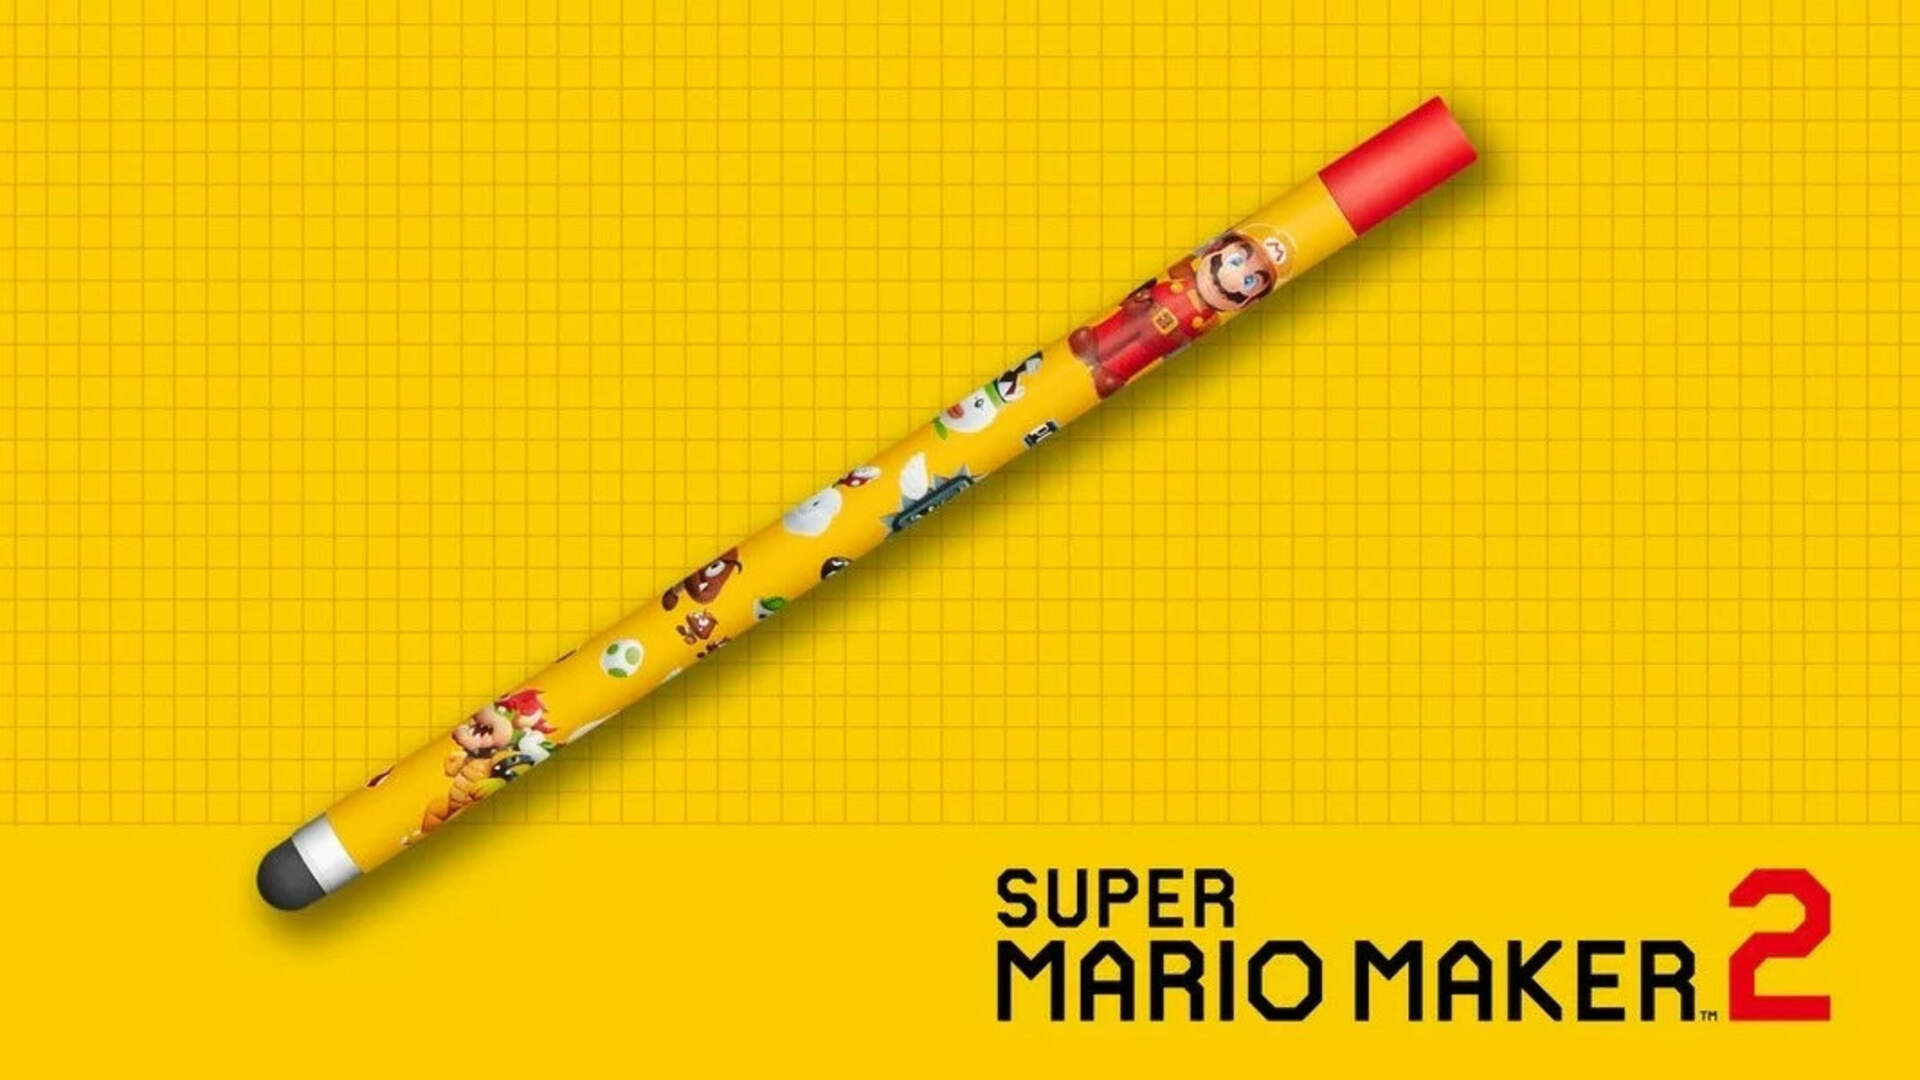 Super Mario Maker 2's Adorable Themed Stylus Isn't Coming to North America